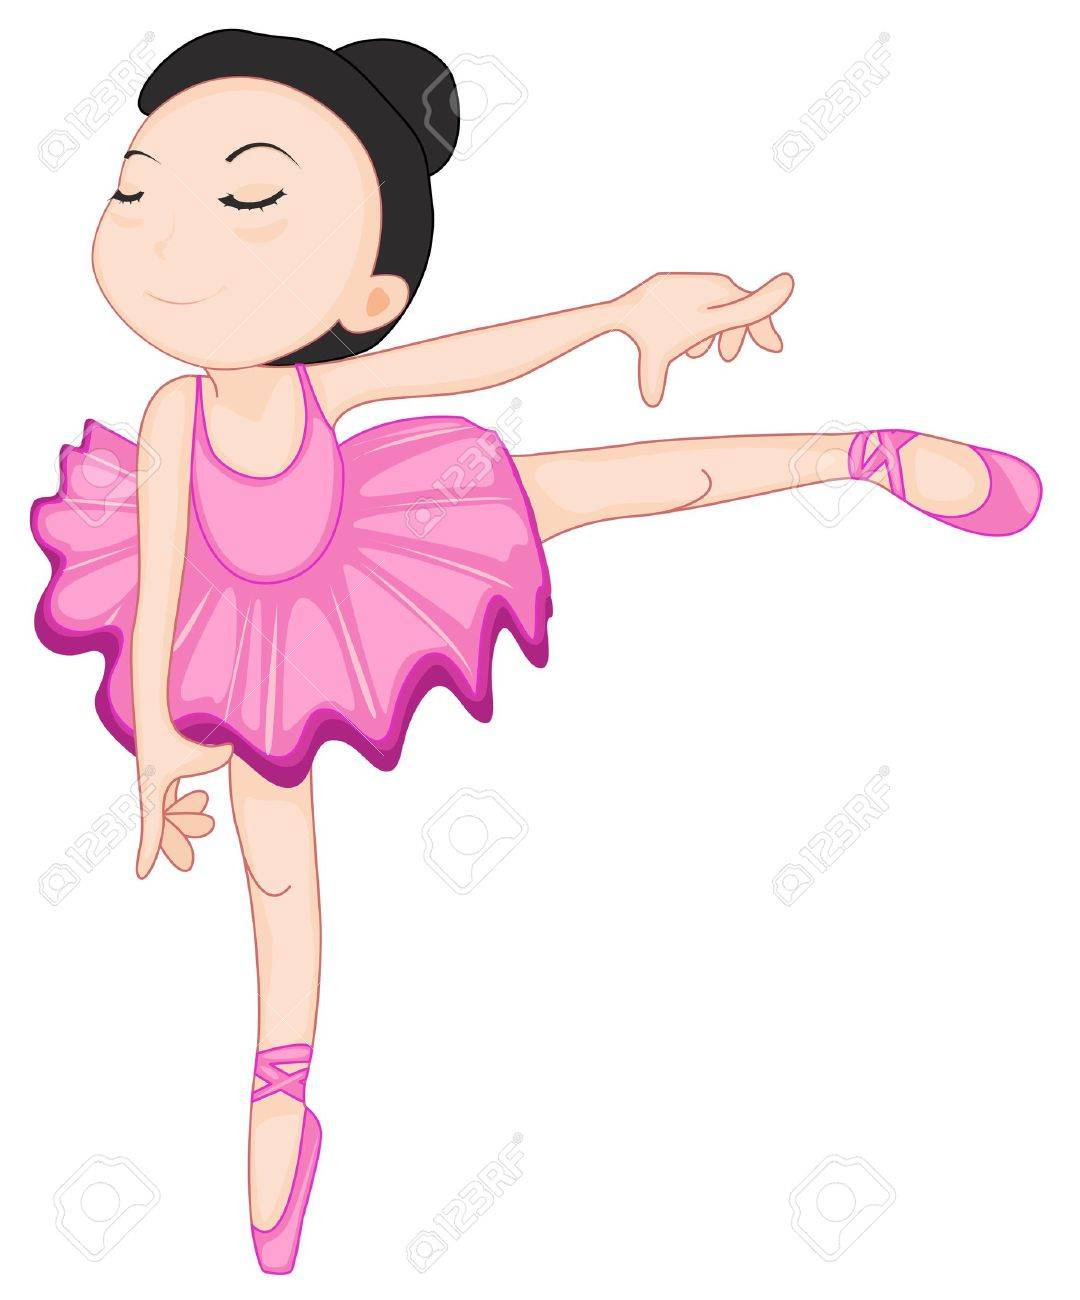 illustration of a ballerina pose on white royalty free cliparts